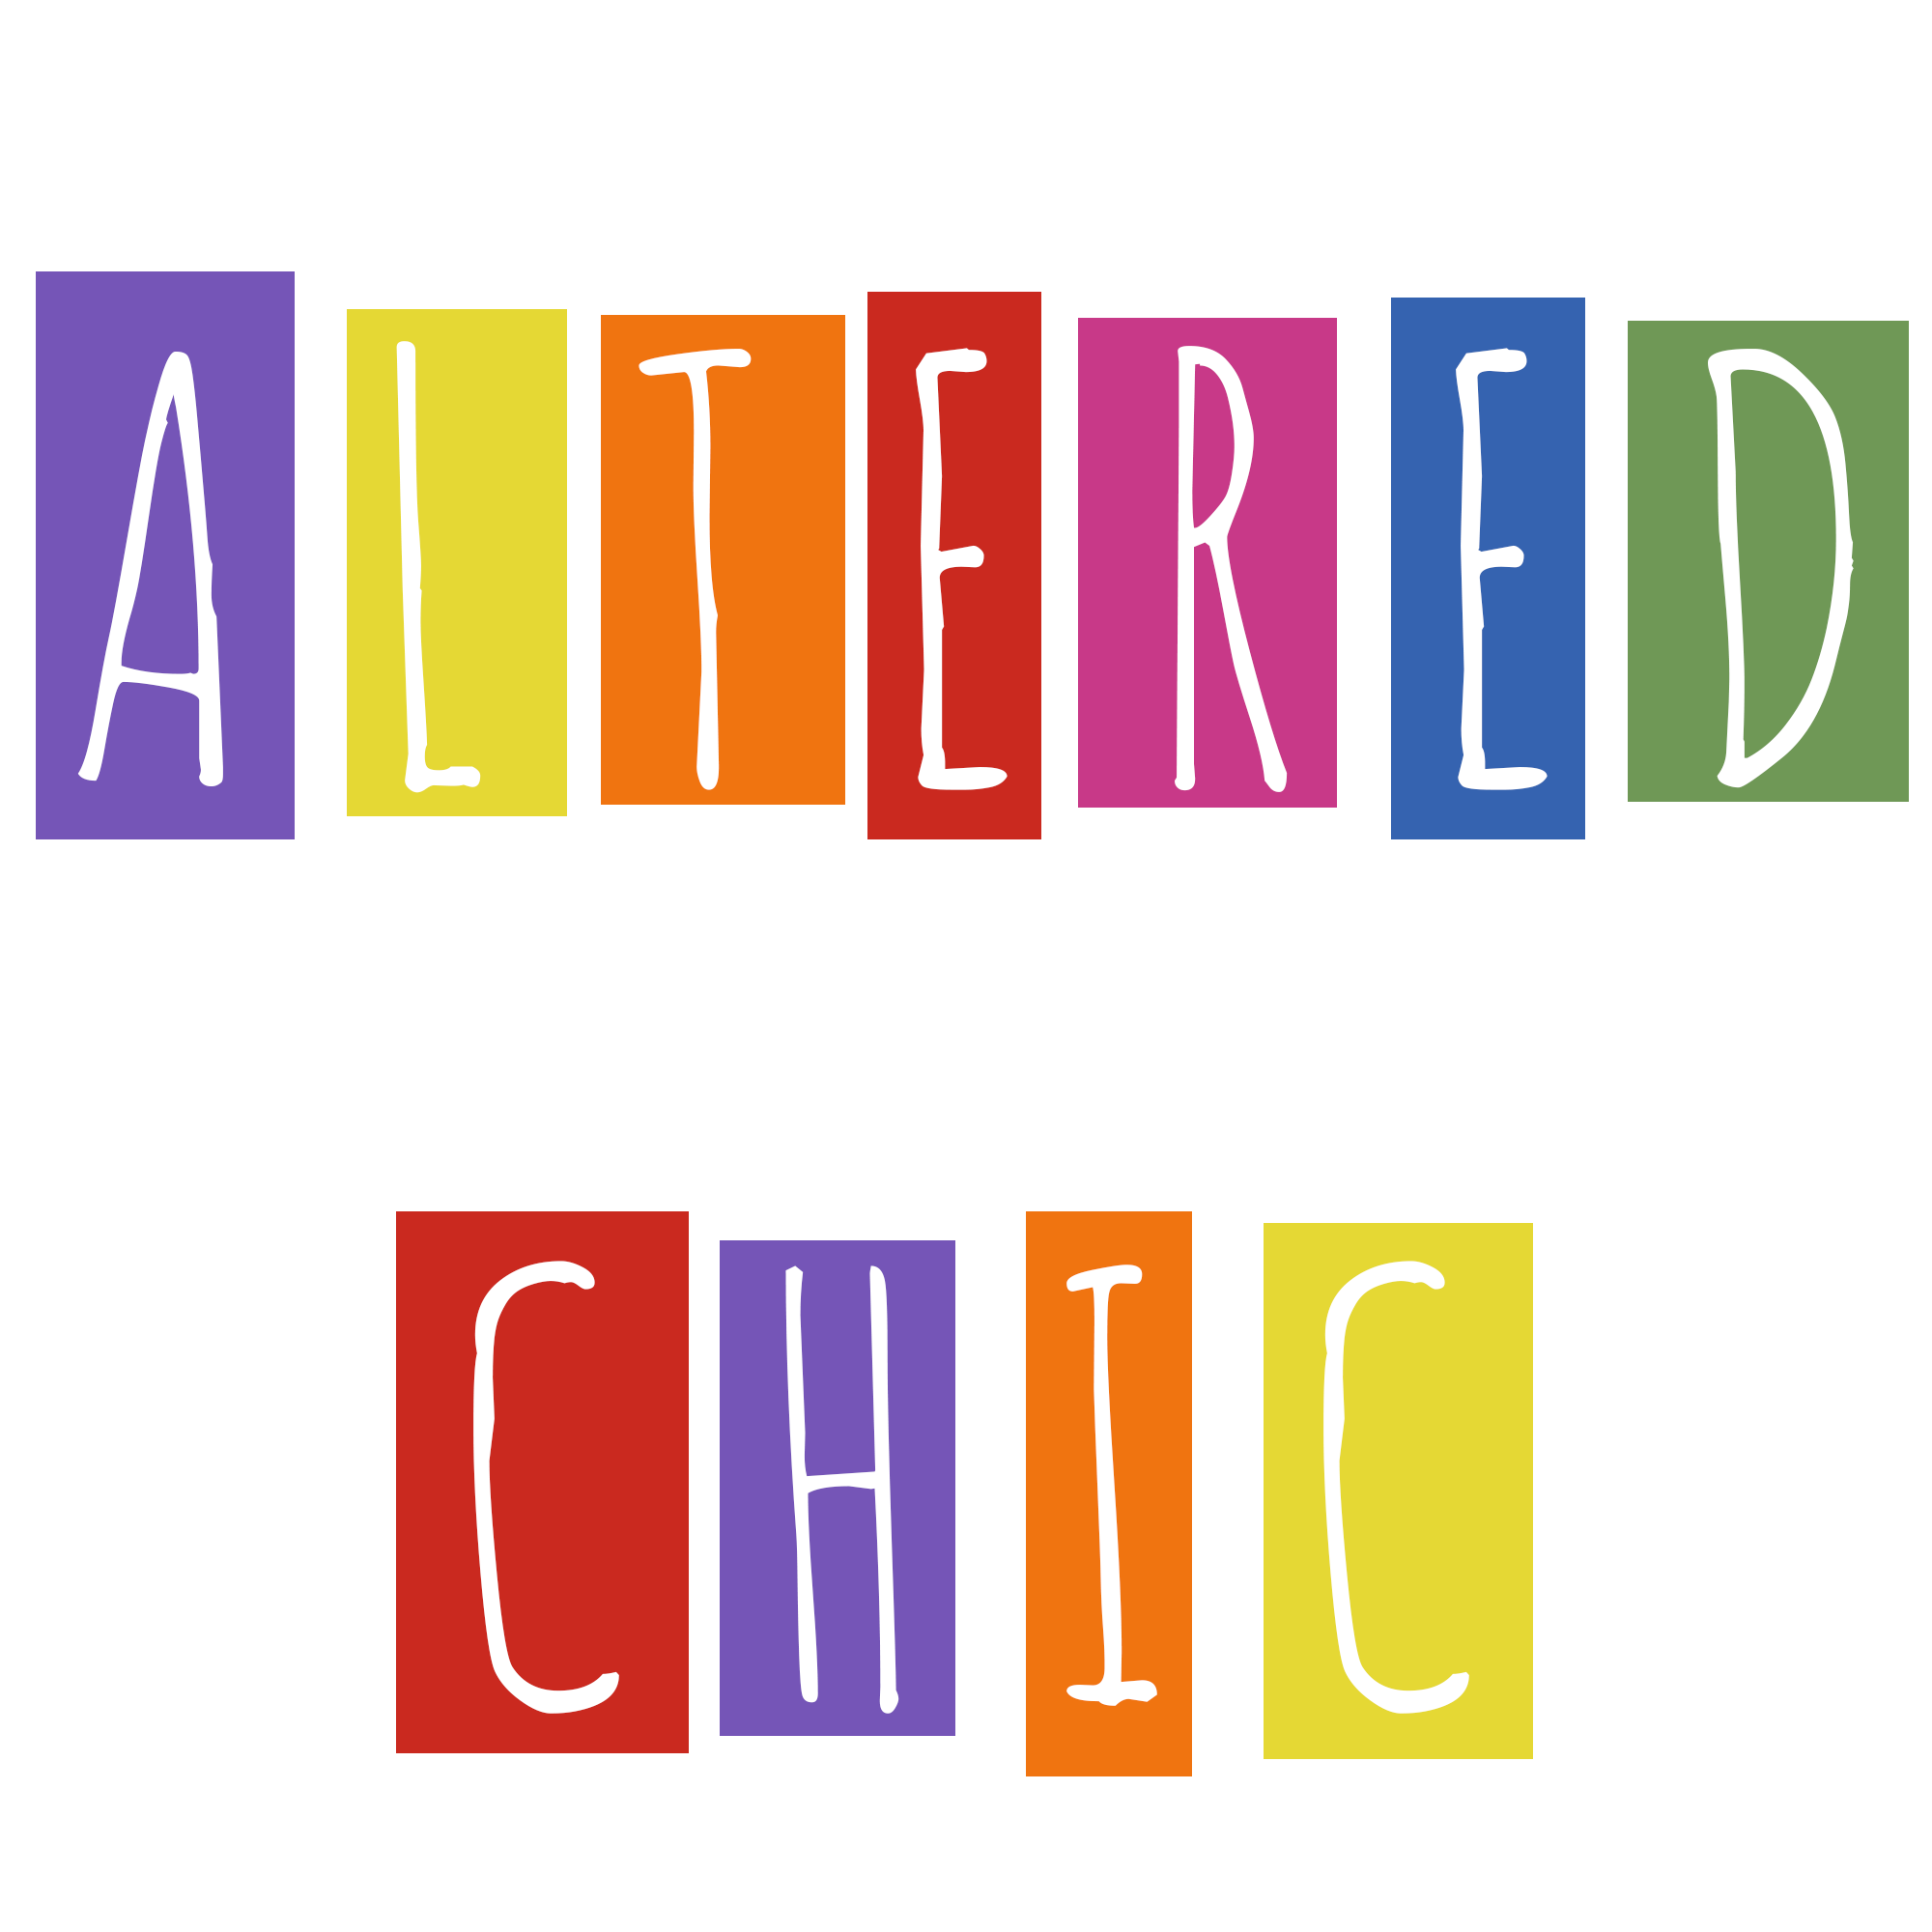 Altered Chic